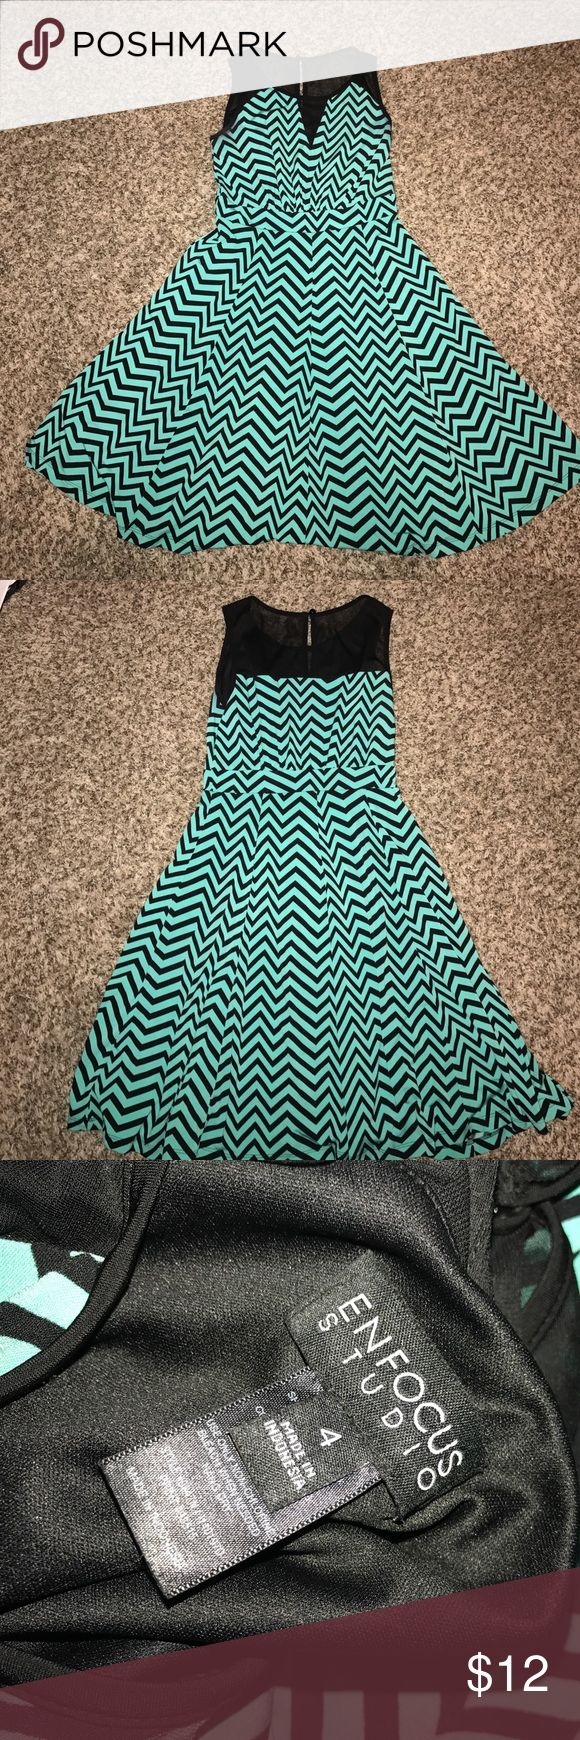 Teal and Navy Chevron Dress Cute chevron dress. A little worn in the arms. Enfocus Studio Dresses Midi